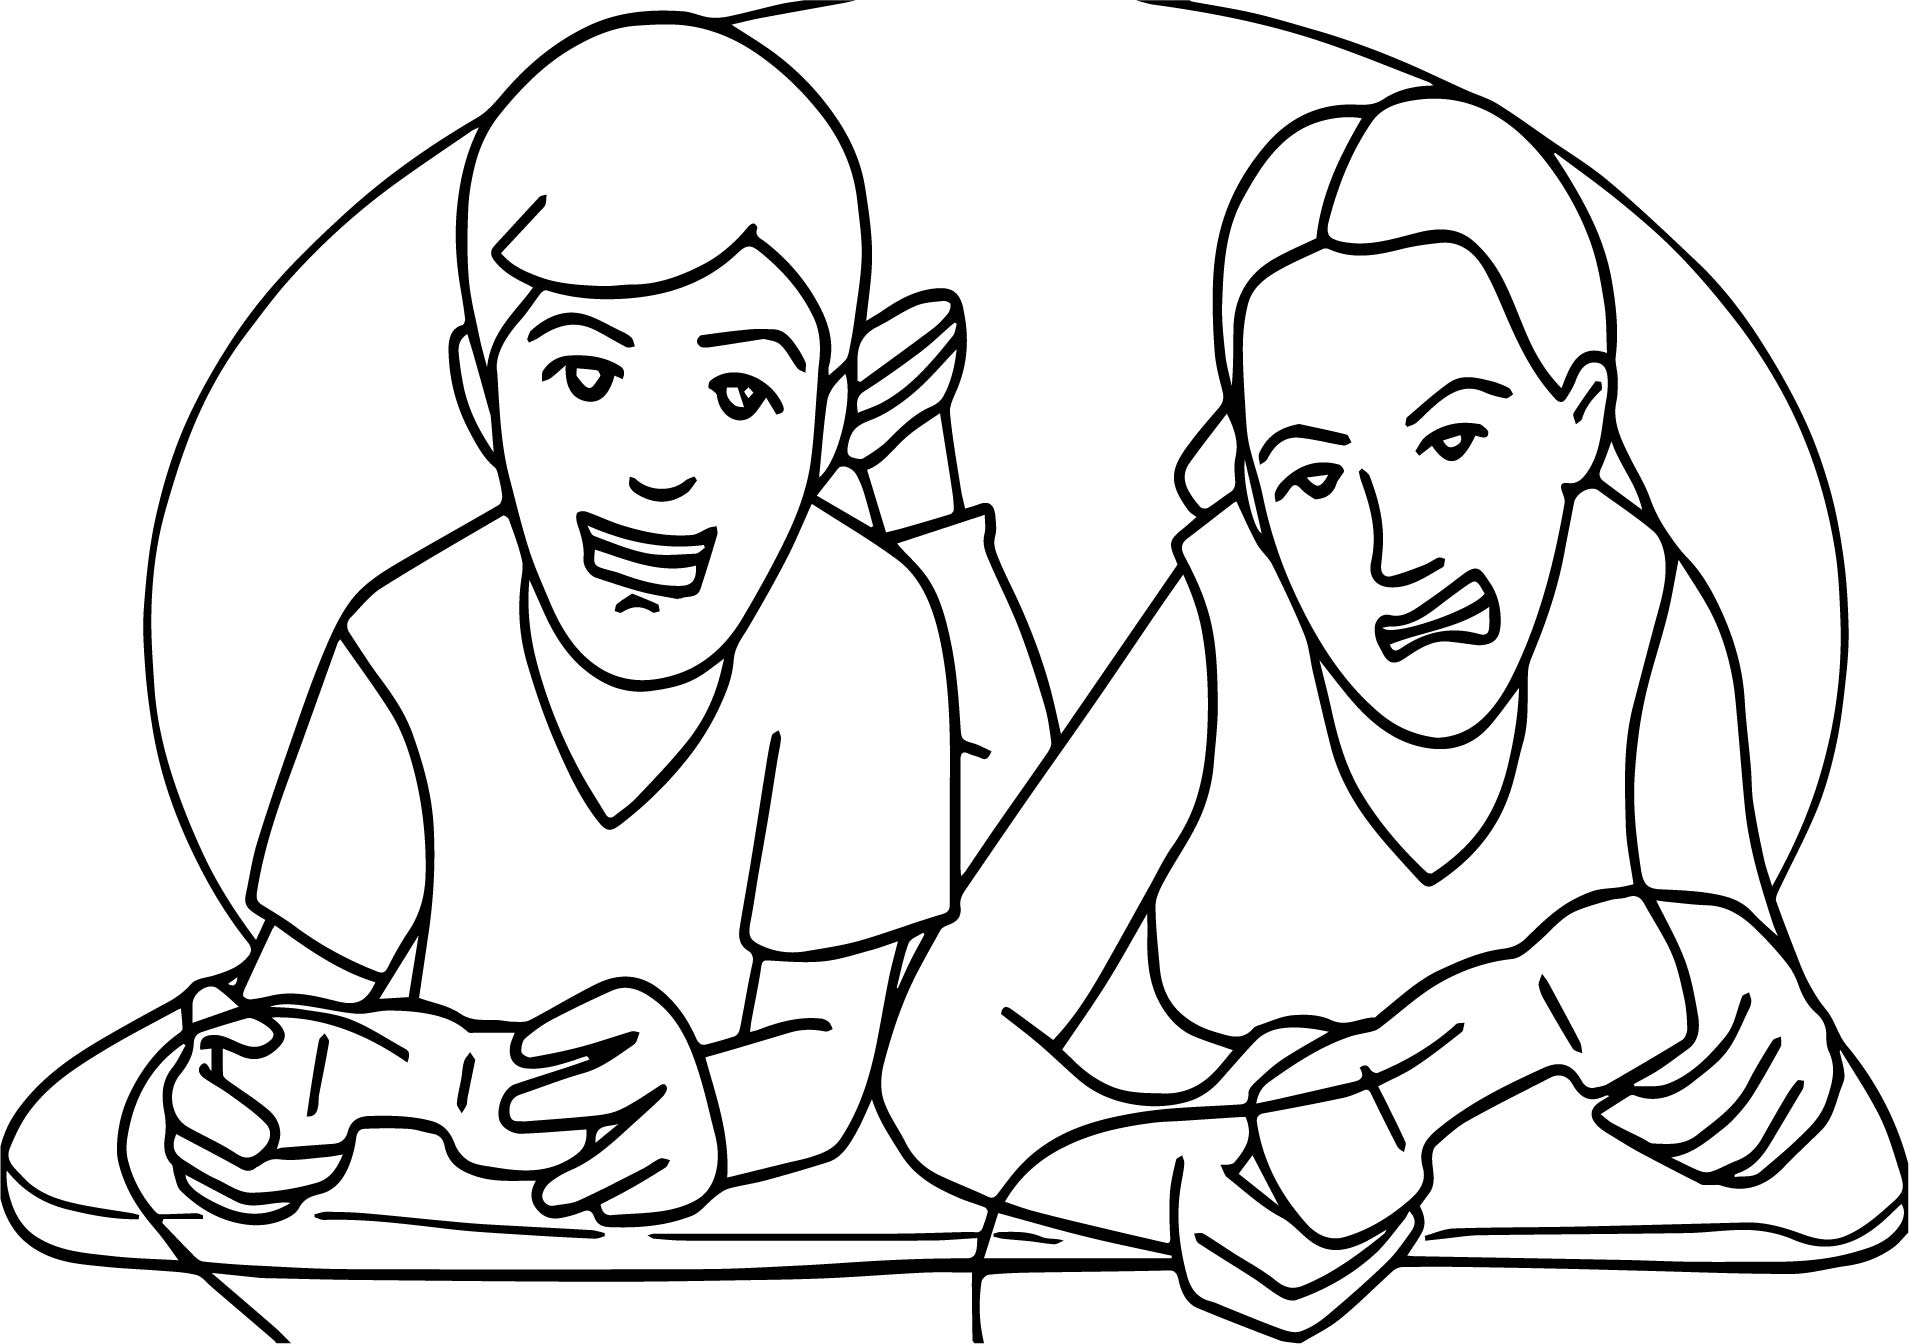 two kids playing video game playing computer games coloring page